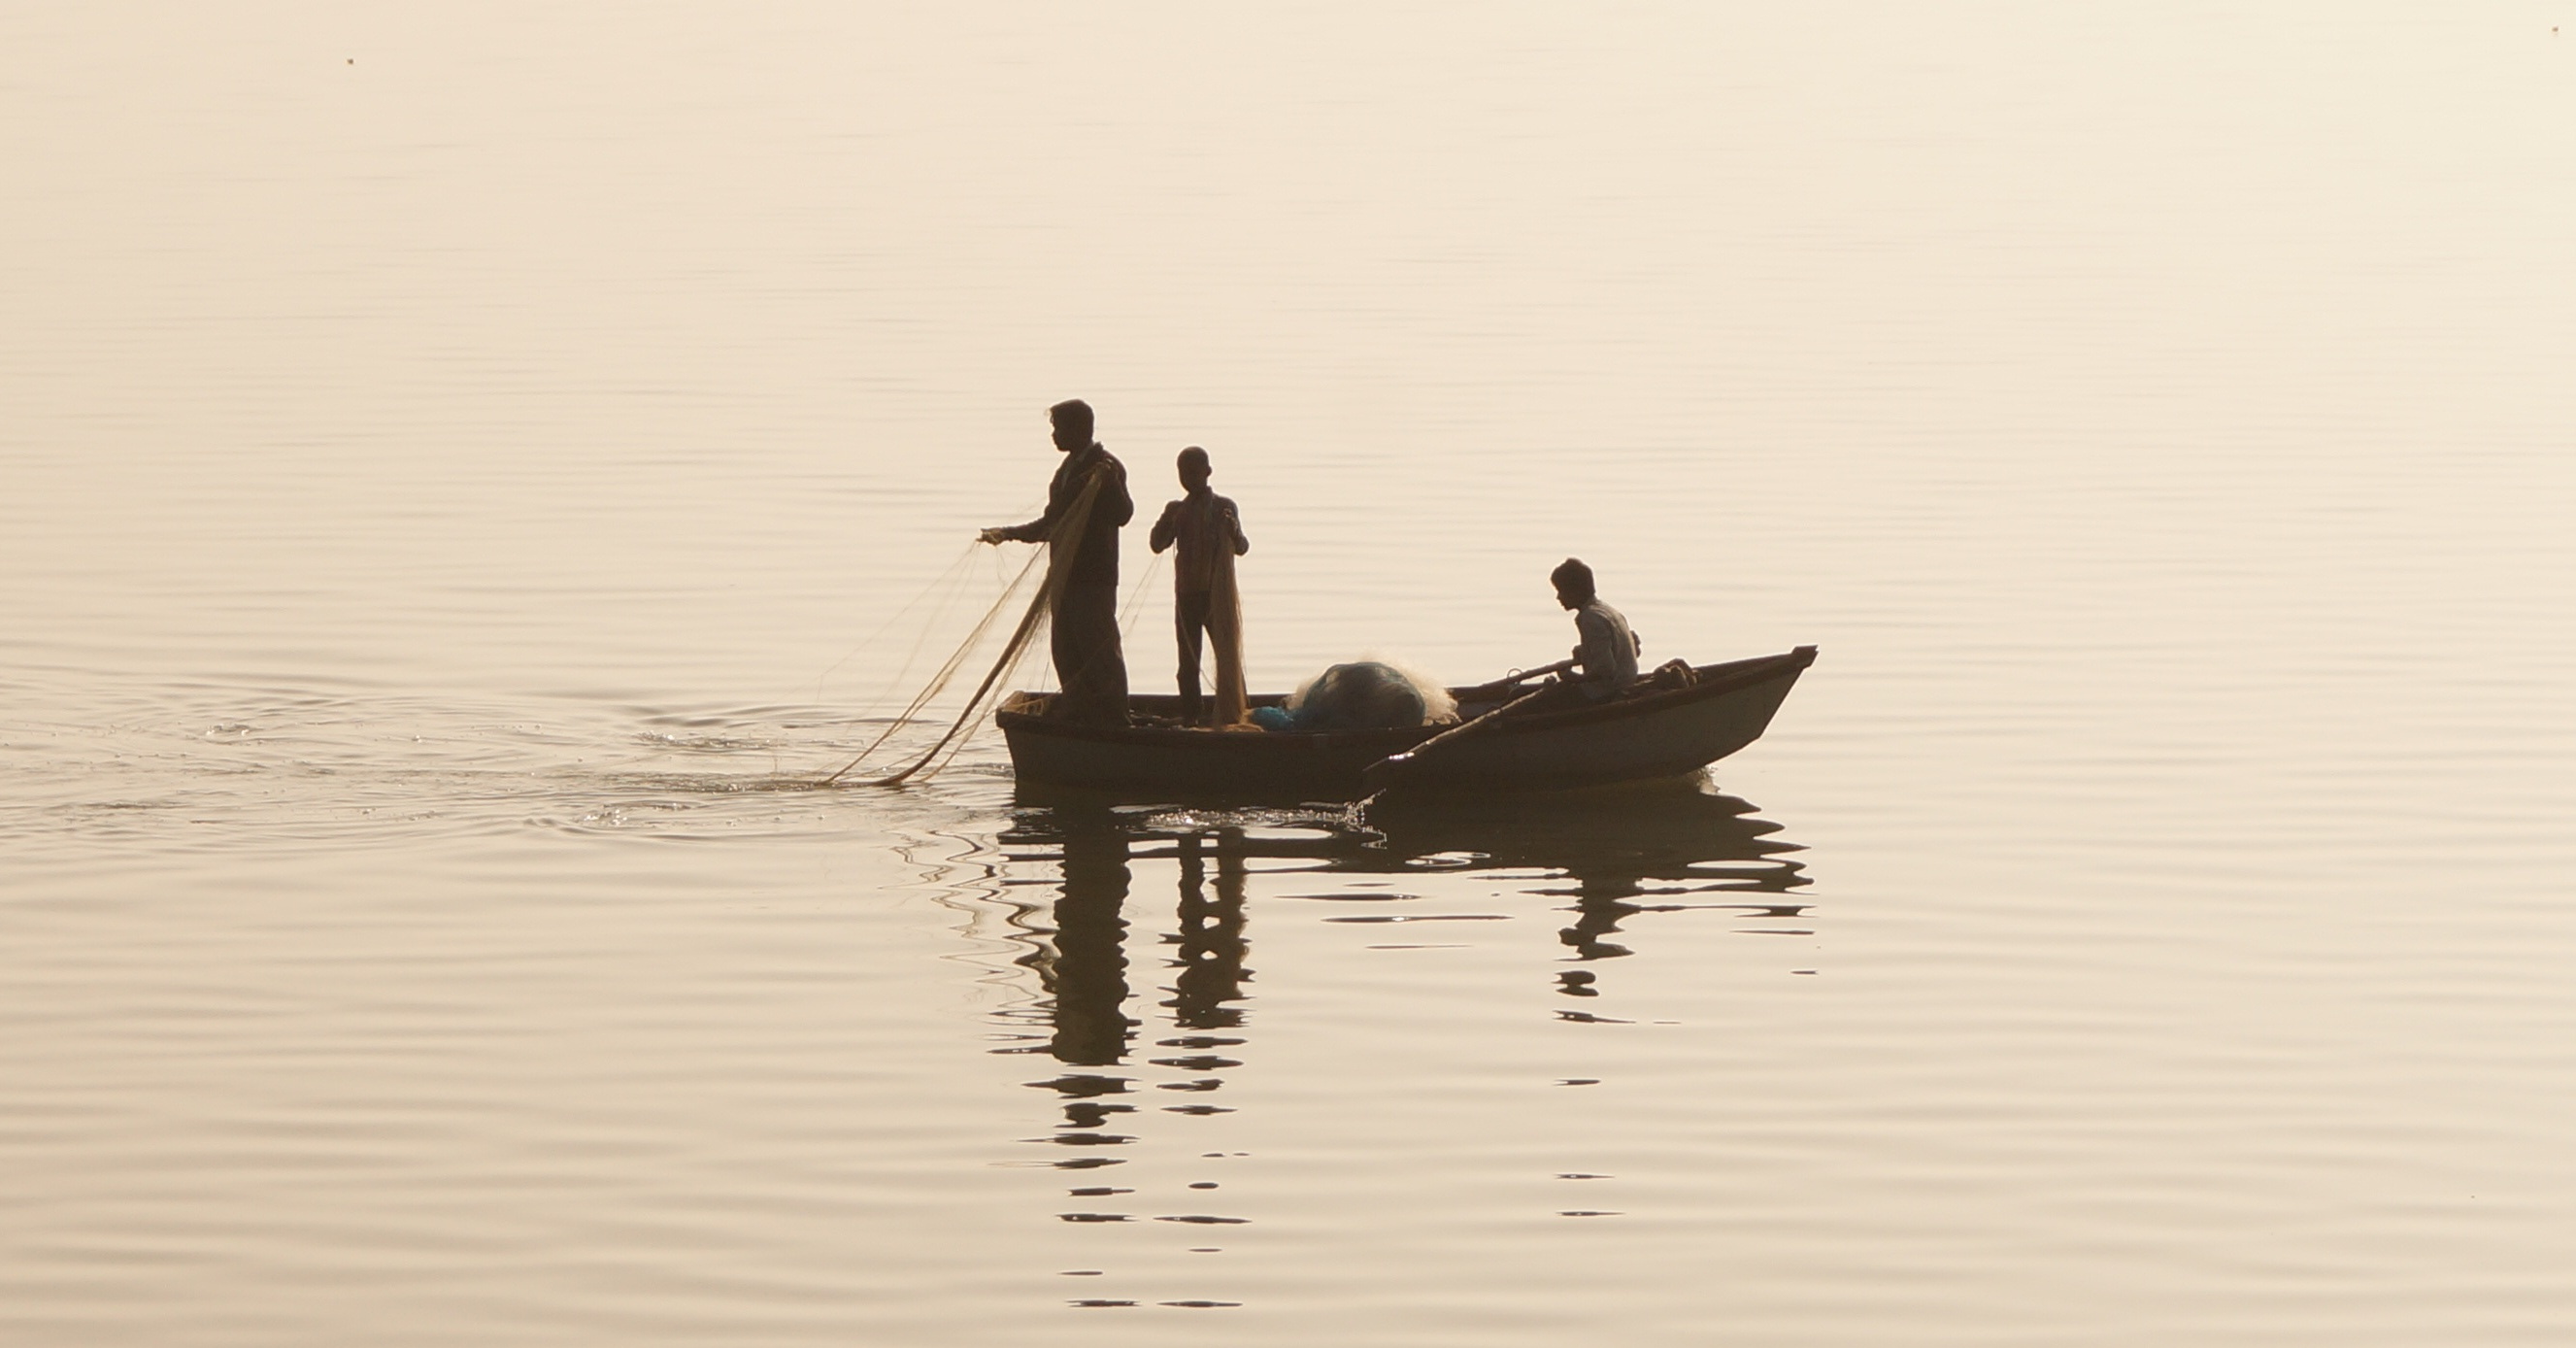 three people in a boat fishing